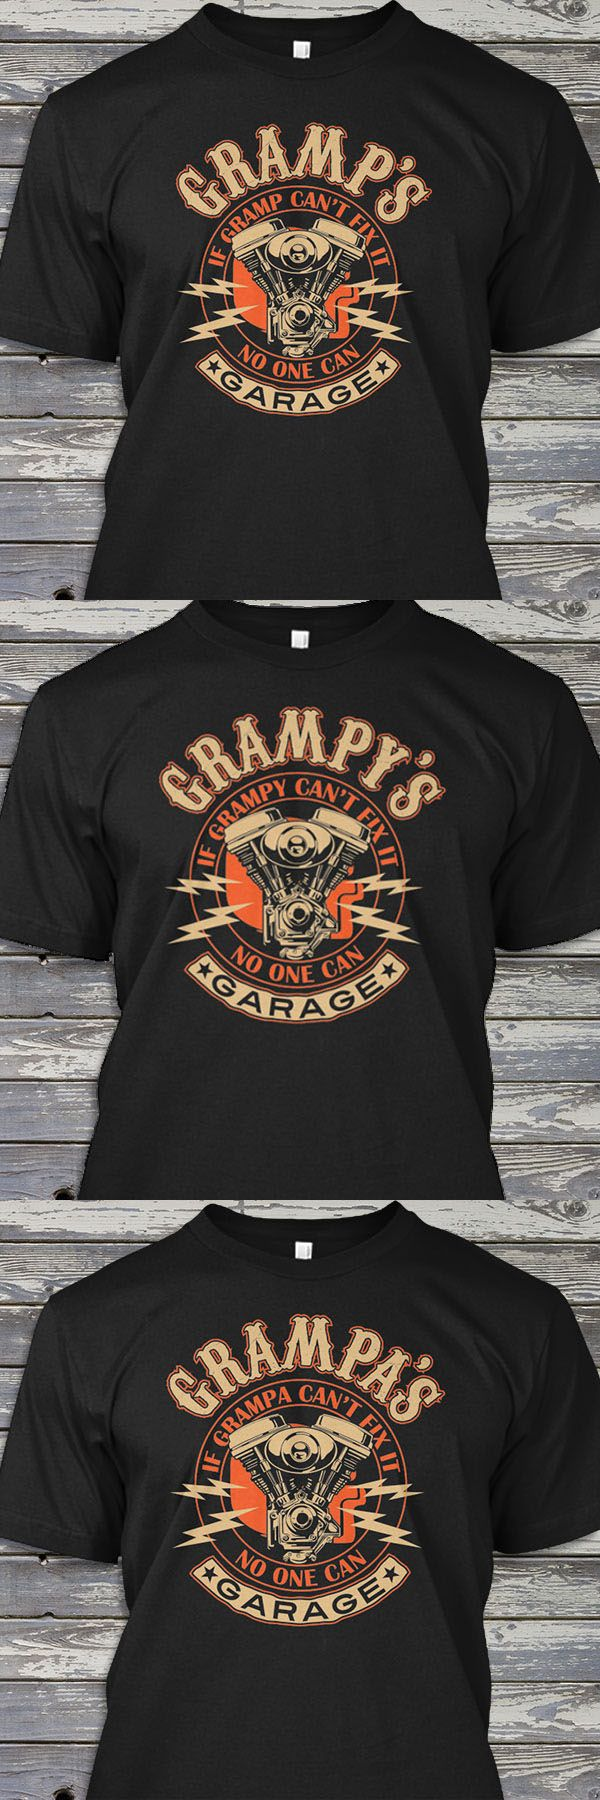 Christmas, birthday, anniversary, there must be some occasion coming up that you can use as an excuse to get your guy one of these.  http://teespring.com/stores/american-original  Perfect for your Harley Davidson riding husband, dad or grandfather. We've got Gramps, Pops, Papa, Grampy t-shirts and more. Click http://teespring.com/stores/american-original now to see them all. Plenty of styles to choose from, tees, v-necks, hoodies and long sleeve tees.